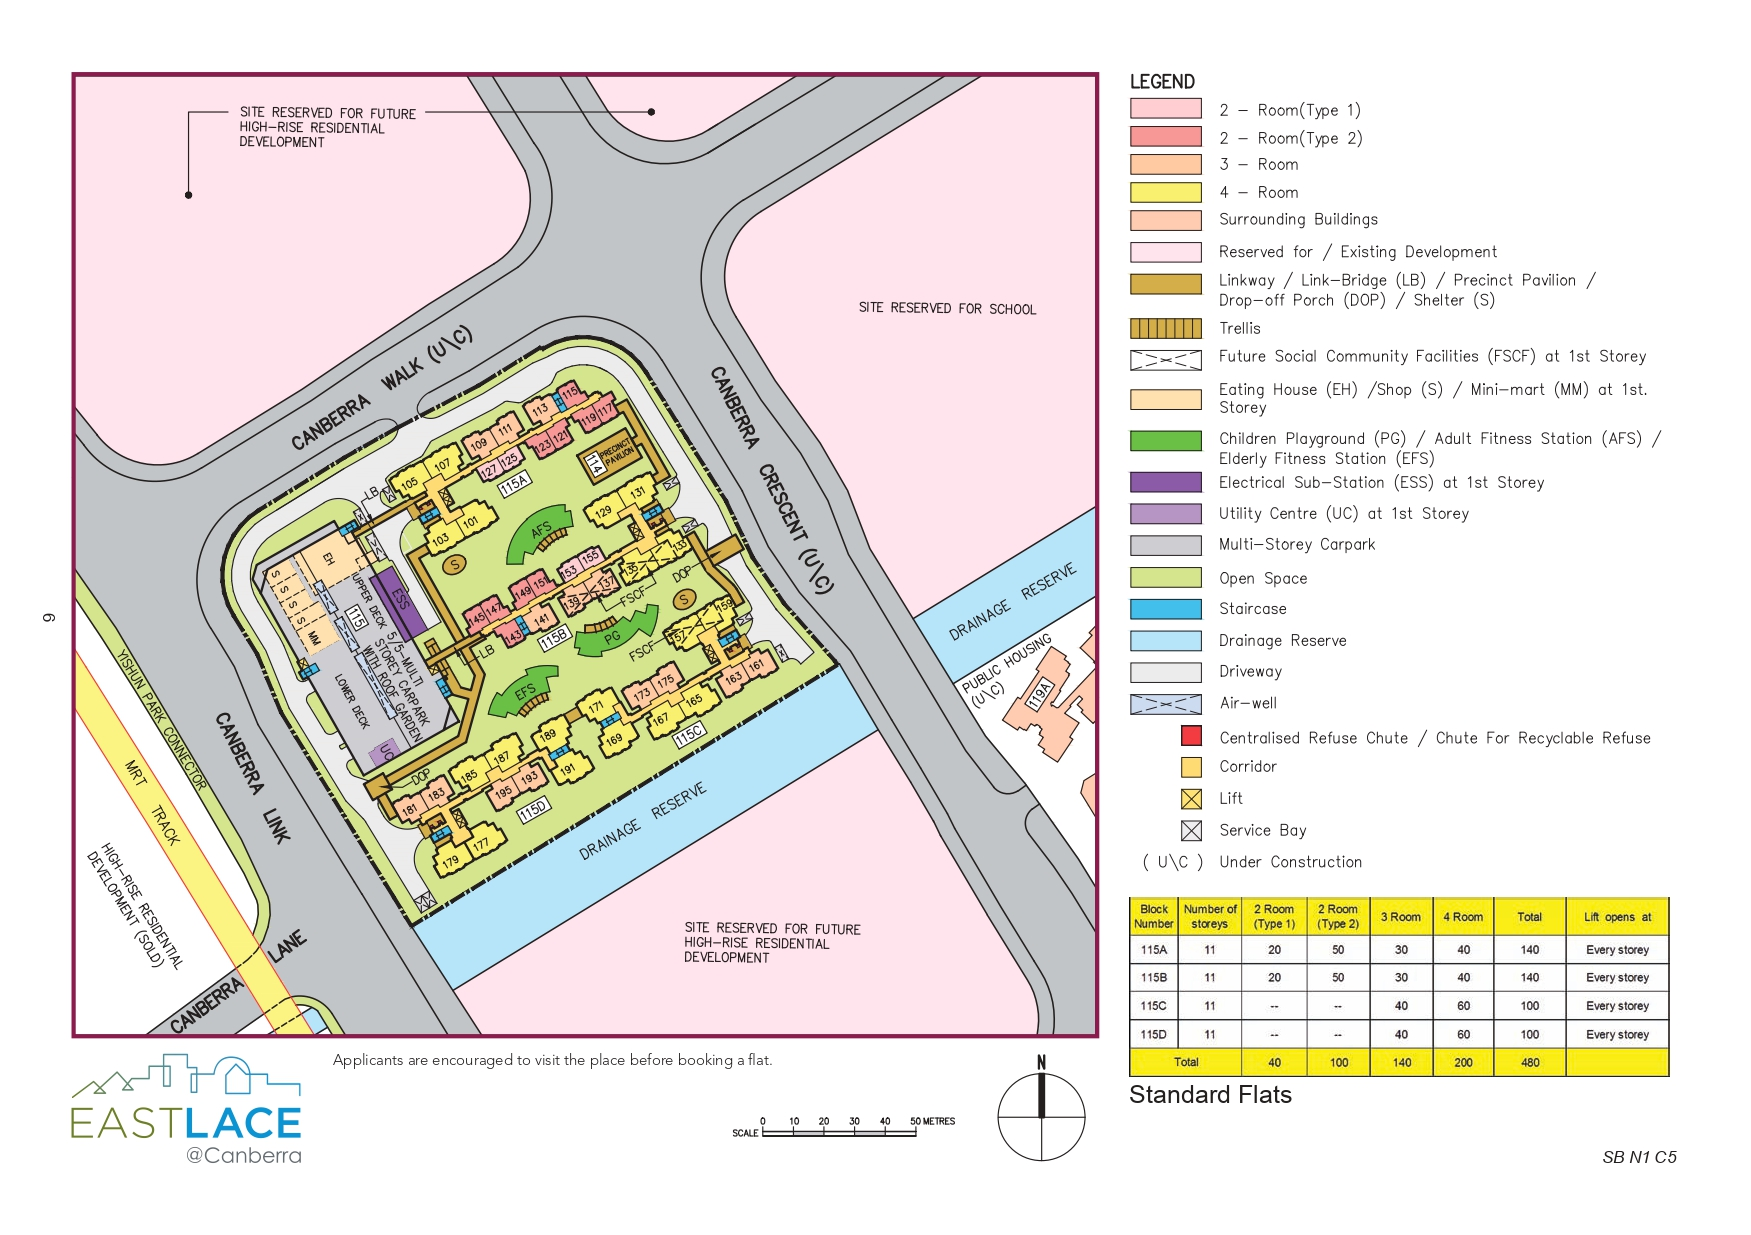 EastLace @ Canberra Site Plan